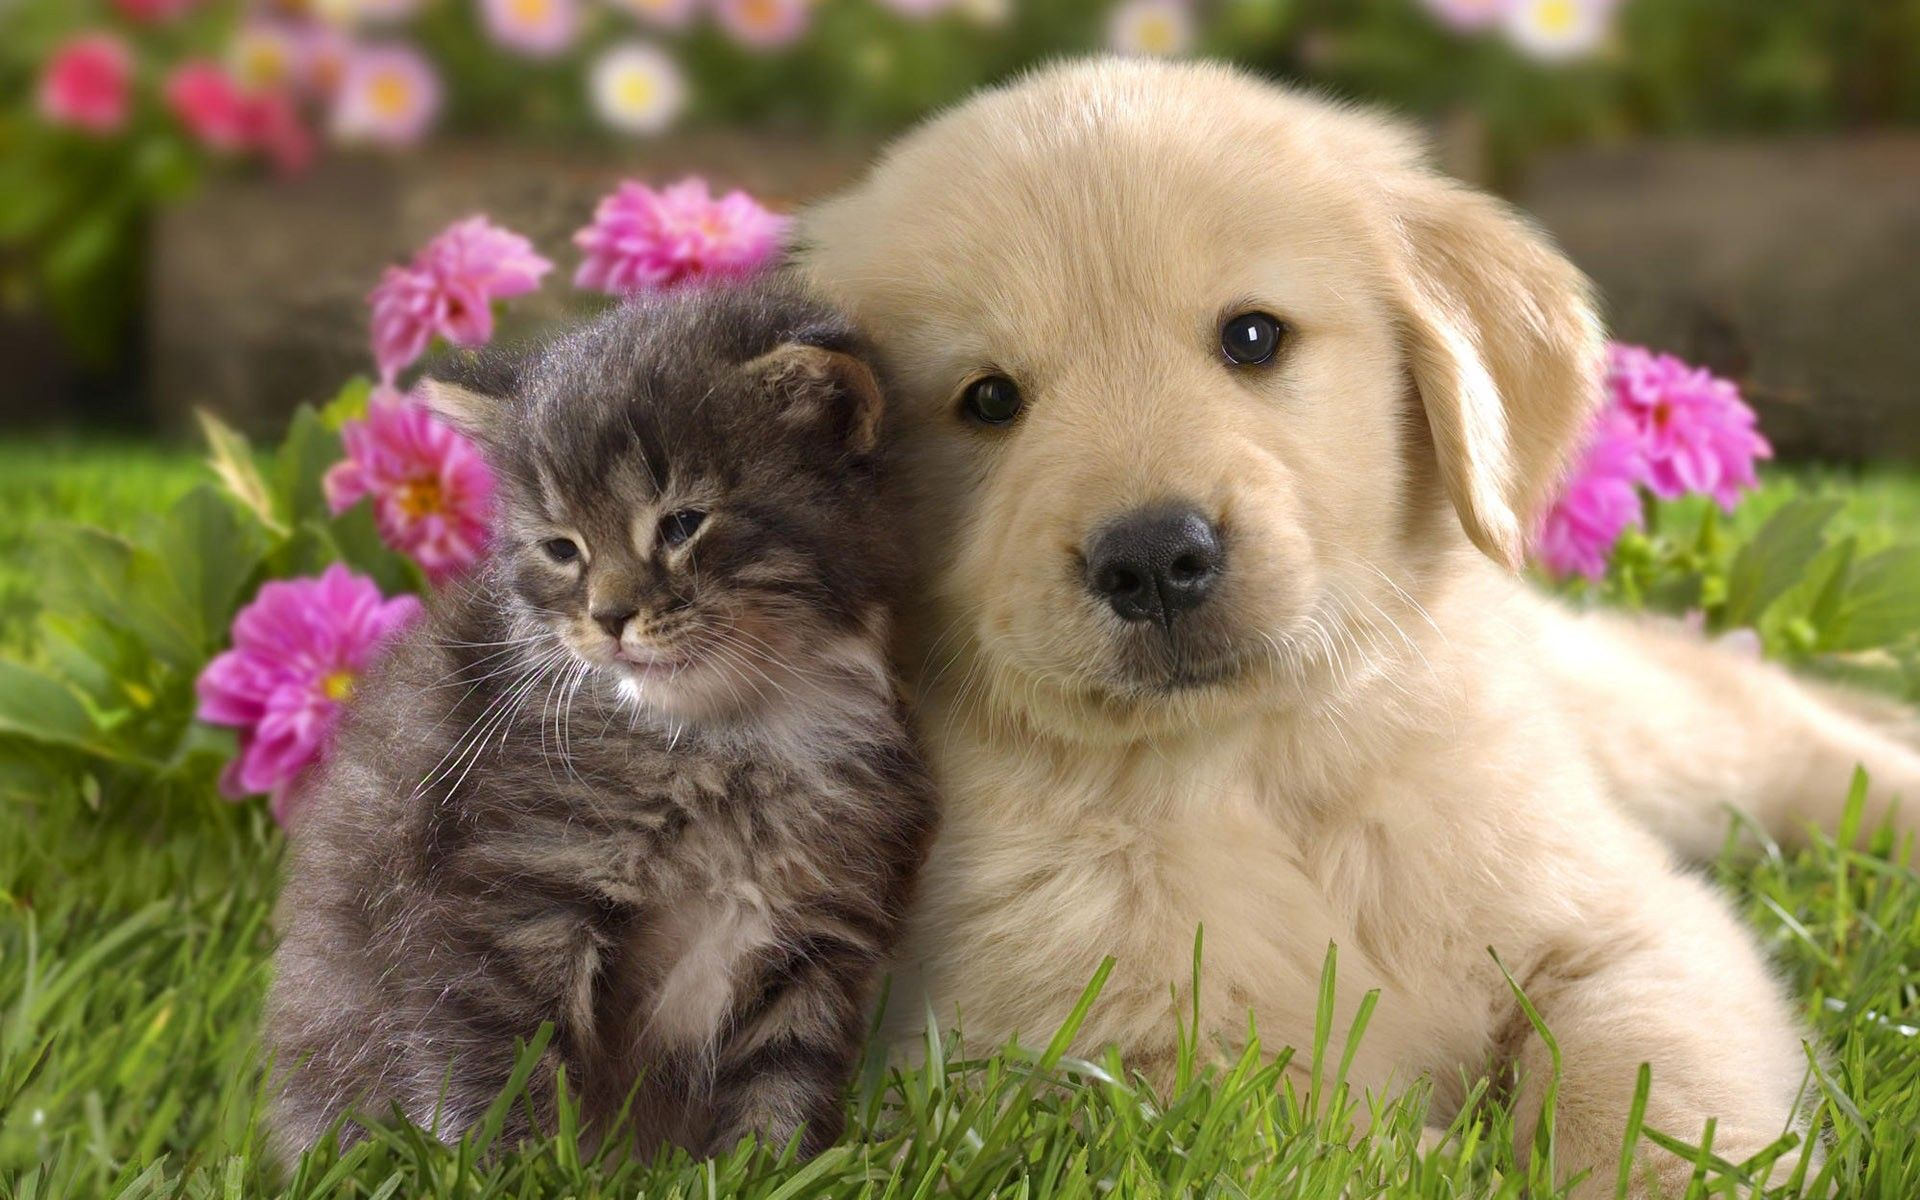 Kitten Kids Couple Puppy Grass Background Flowers Cute Cats And Dogs Cute Animal Videos Kittens Cutest Baby